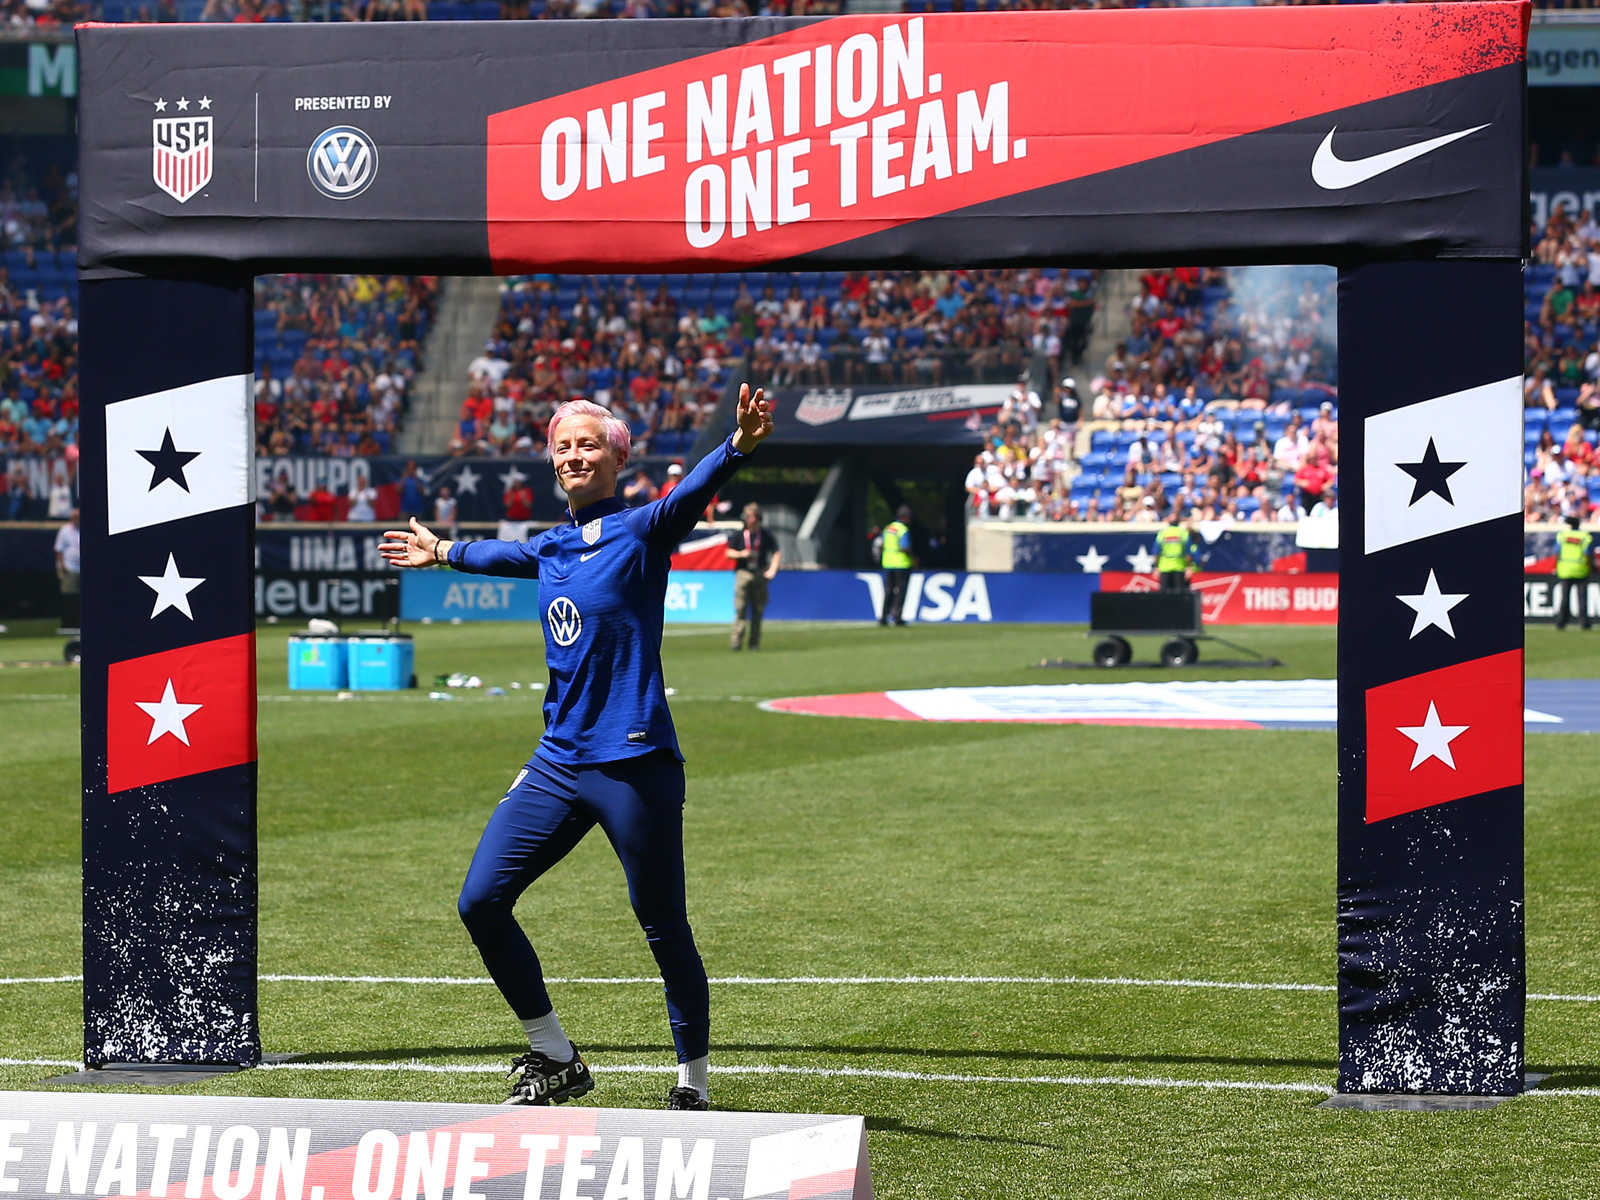 Megan Rapinoe leads the USWNT into the Women's World Cup